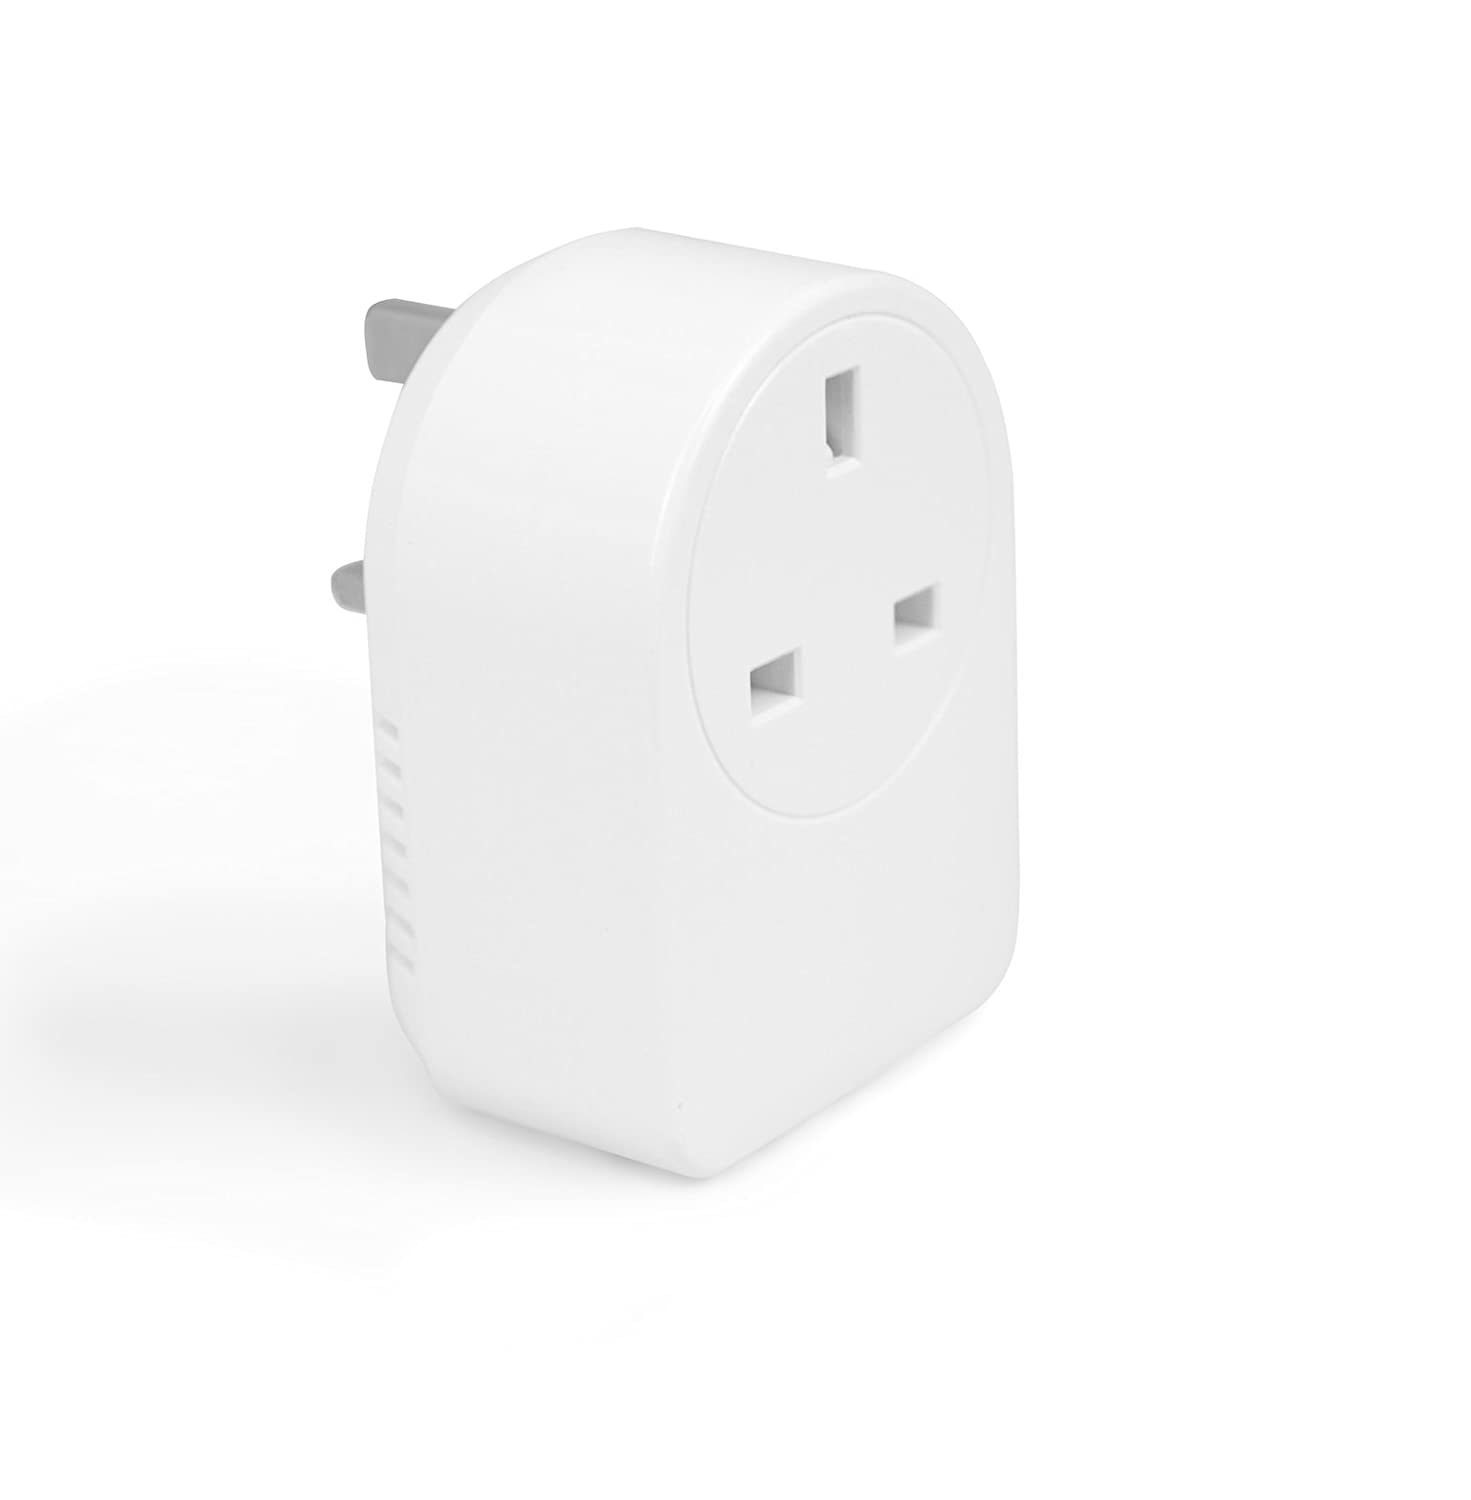 Aeotec Smart Switch Gen5, Z-Wave Plus remote control UK smart plug with energy metering and power reports, works with Electric Ireland Smarter Home Aeon Labs